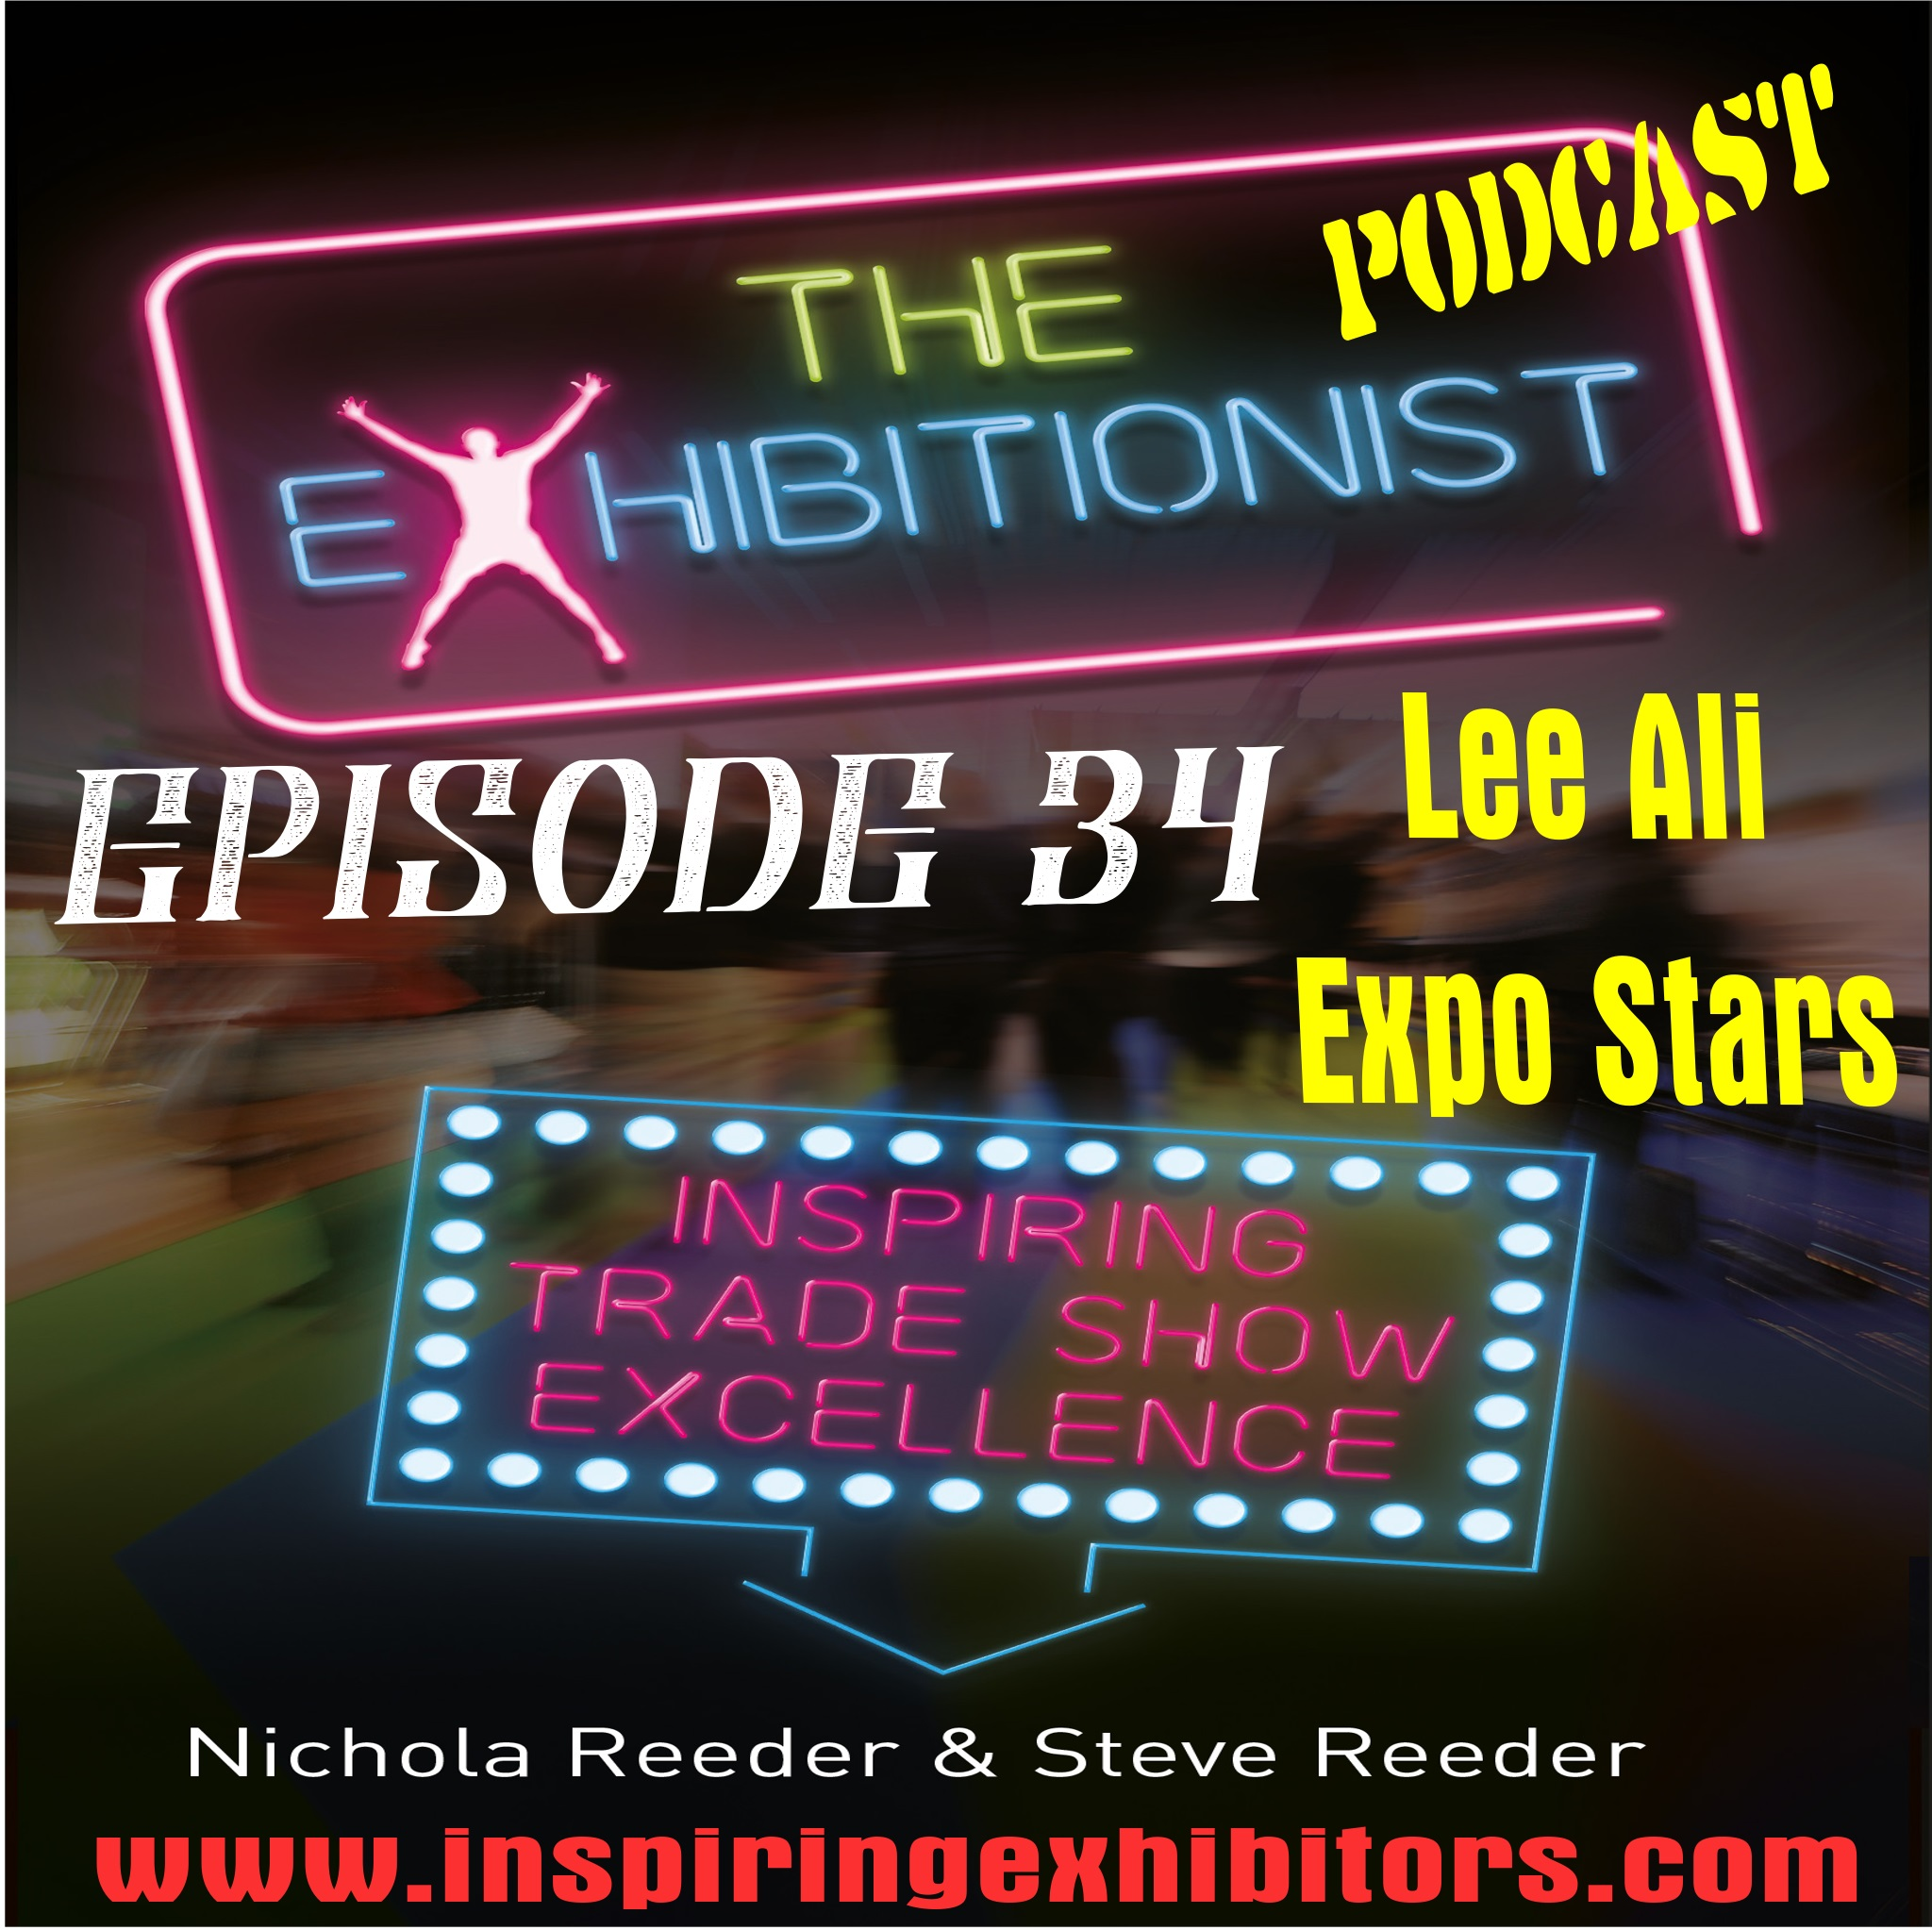 The Exhibitionist Podcast Episode 34 - Lee Ali - MD Expo Stars